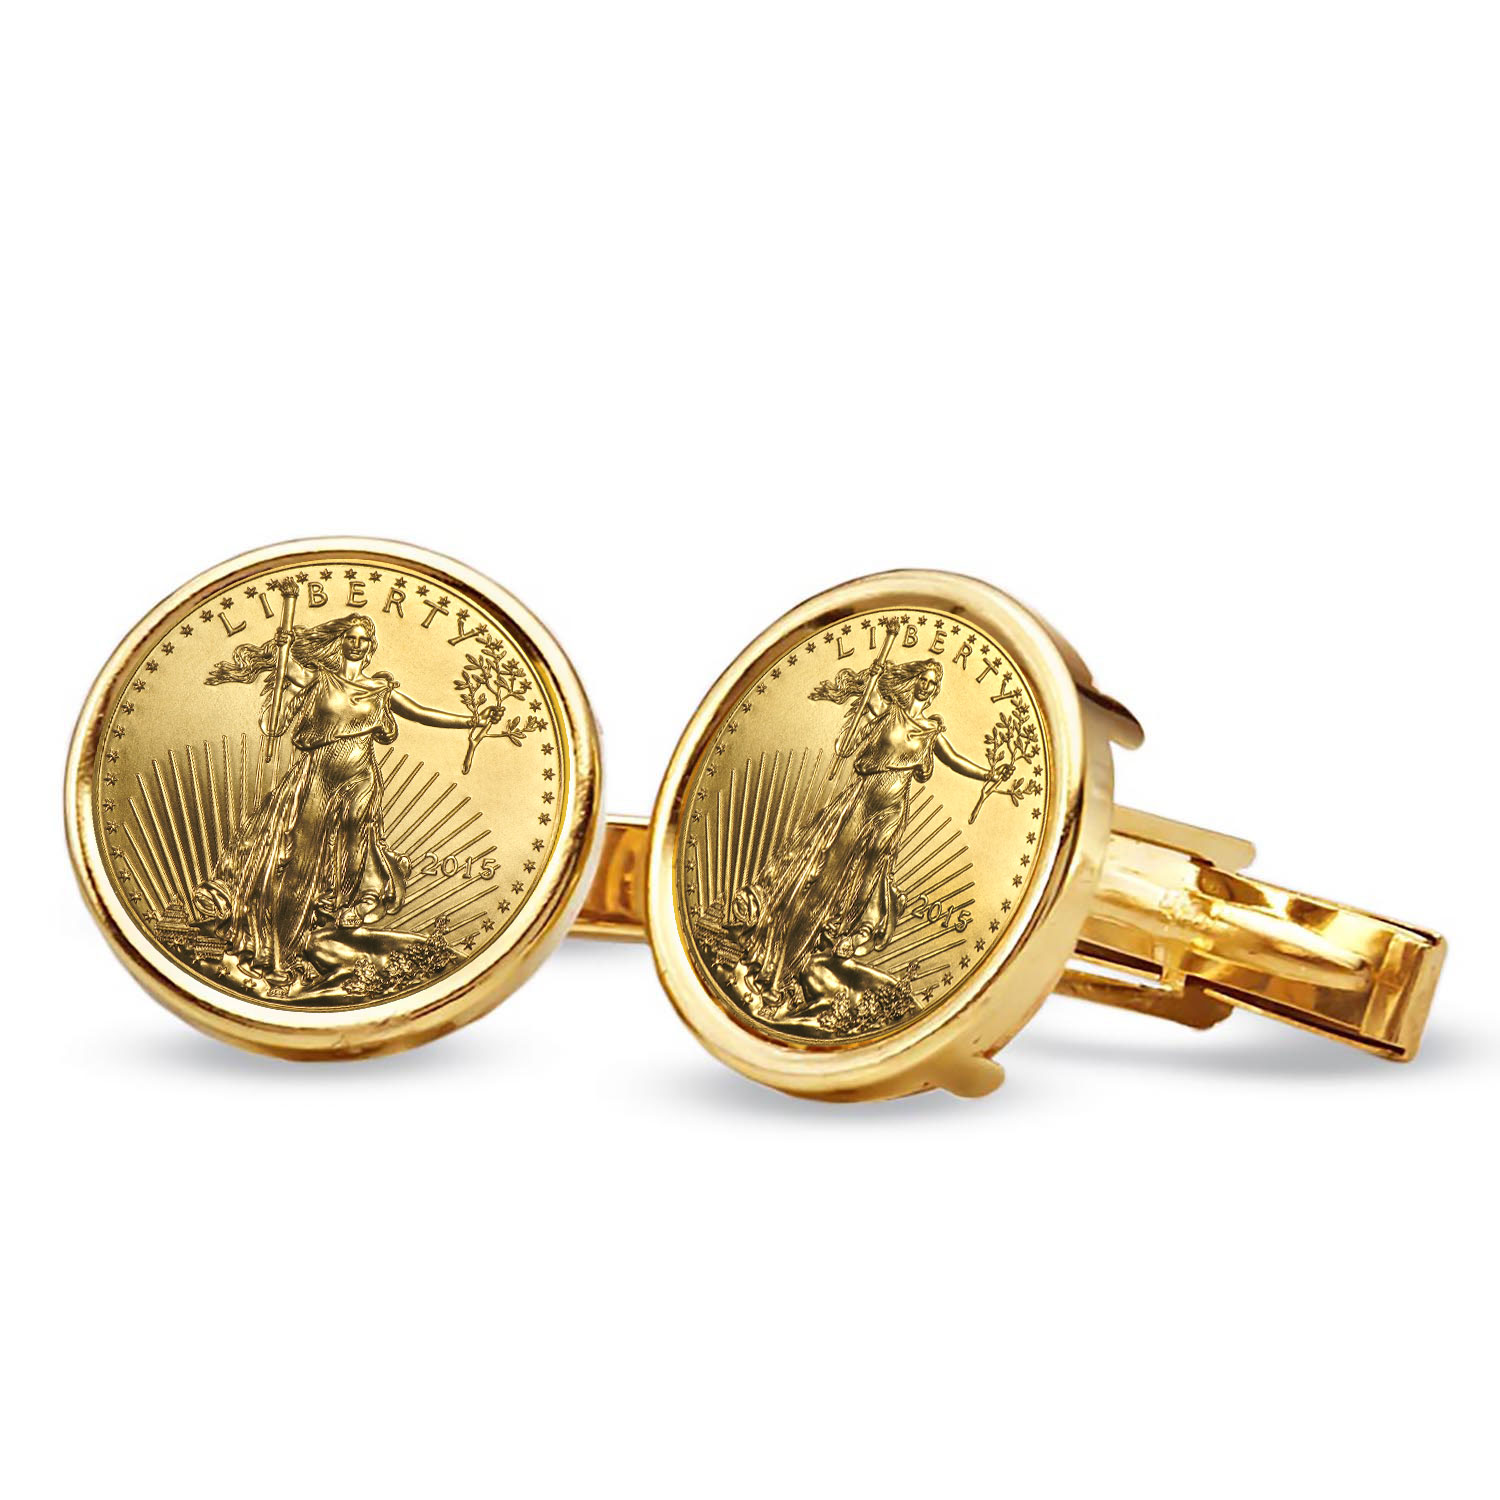 2015 1/10-oz Gold Eagle Cuff Links (Polished Plain)